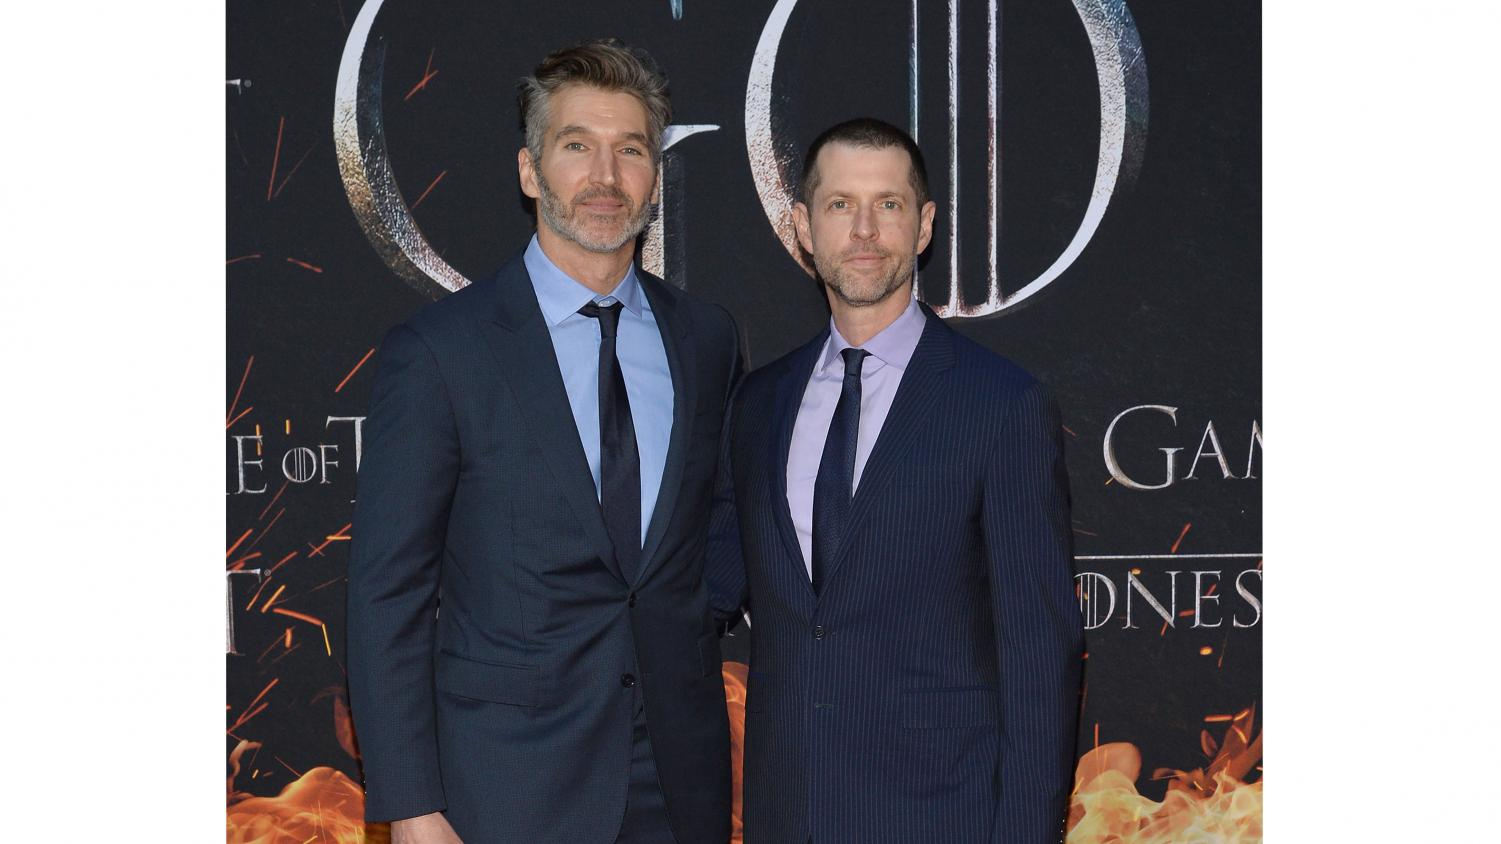 (L-R) David Benioff and D.B. Weiss attend HBO's Game of Thrones eight and final season premiere at Radio City Music Hall in New York, NY, April 3, 2019. (Anthony Behar/Sipa USA/TNS)